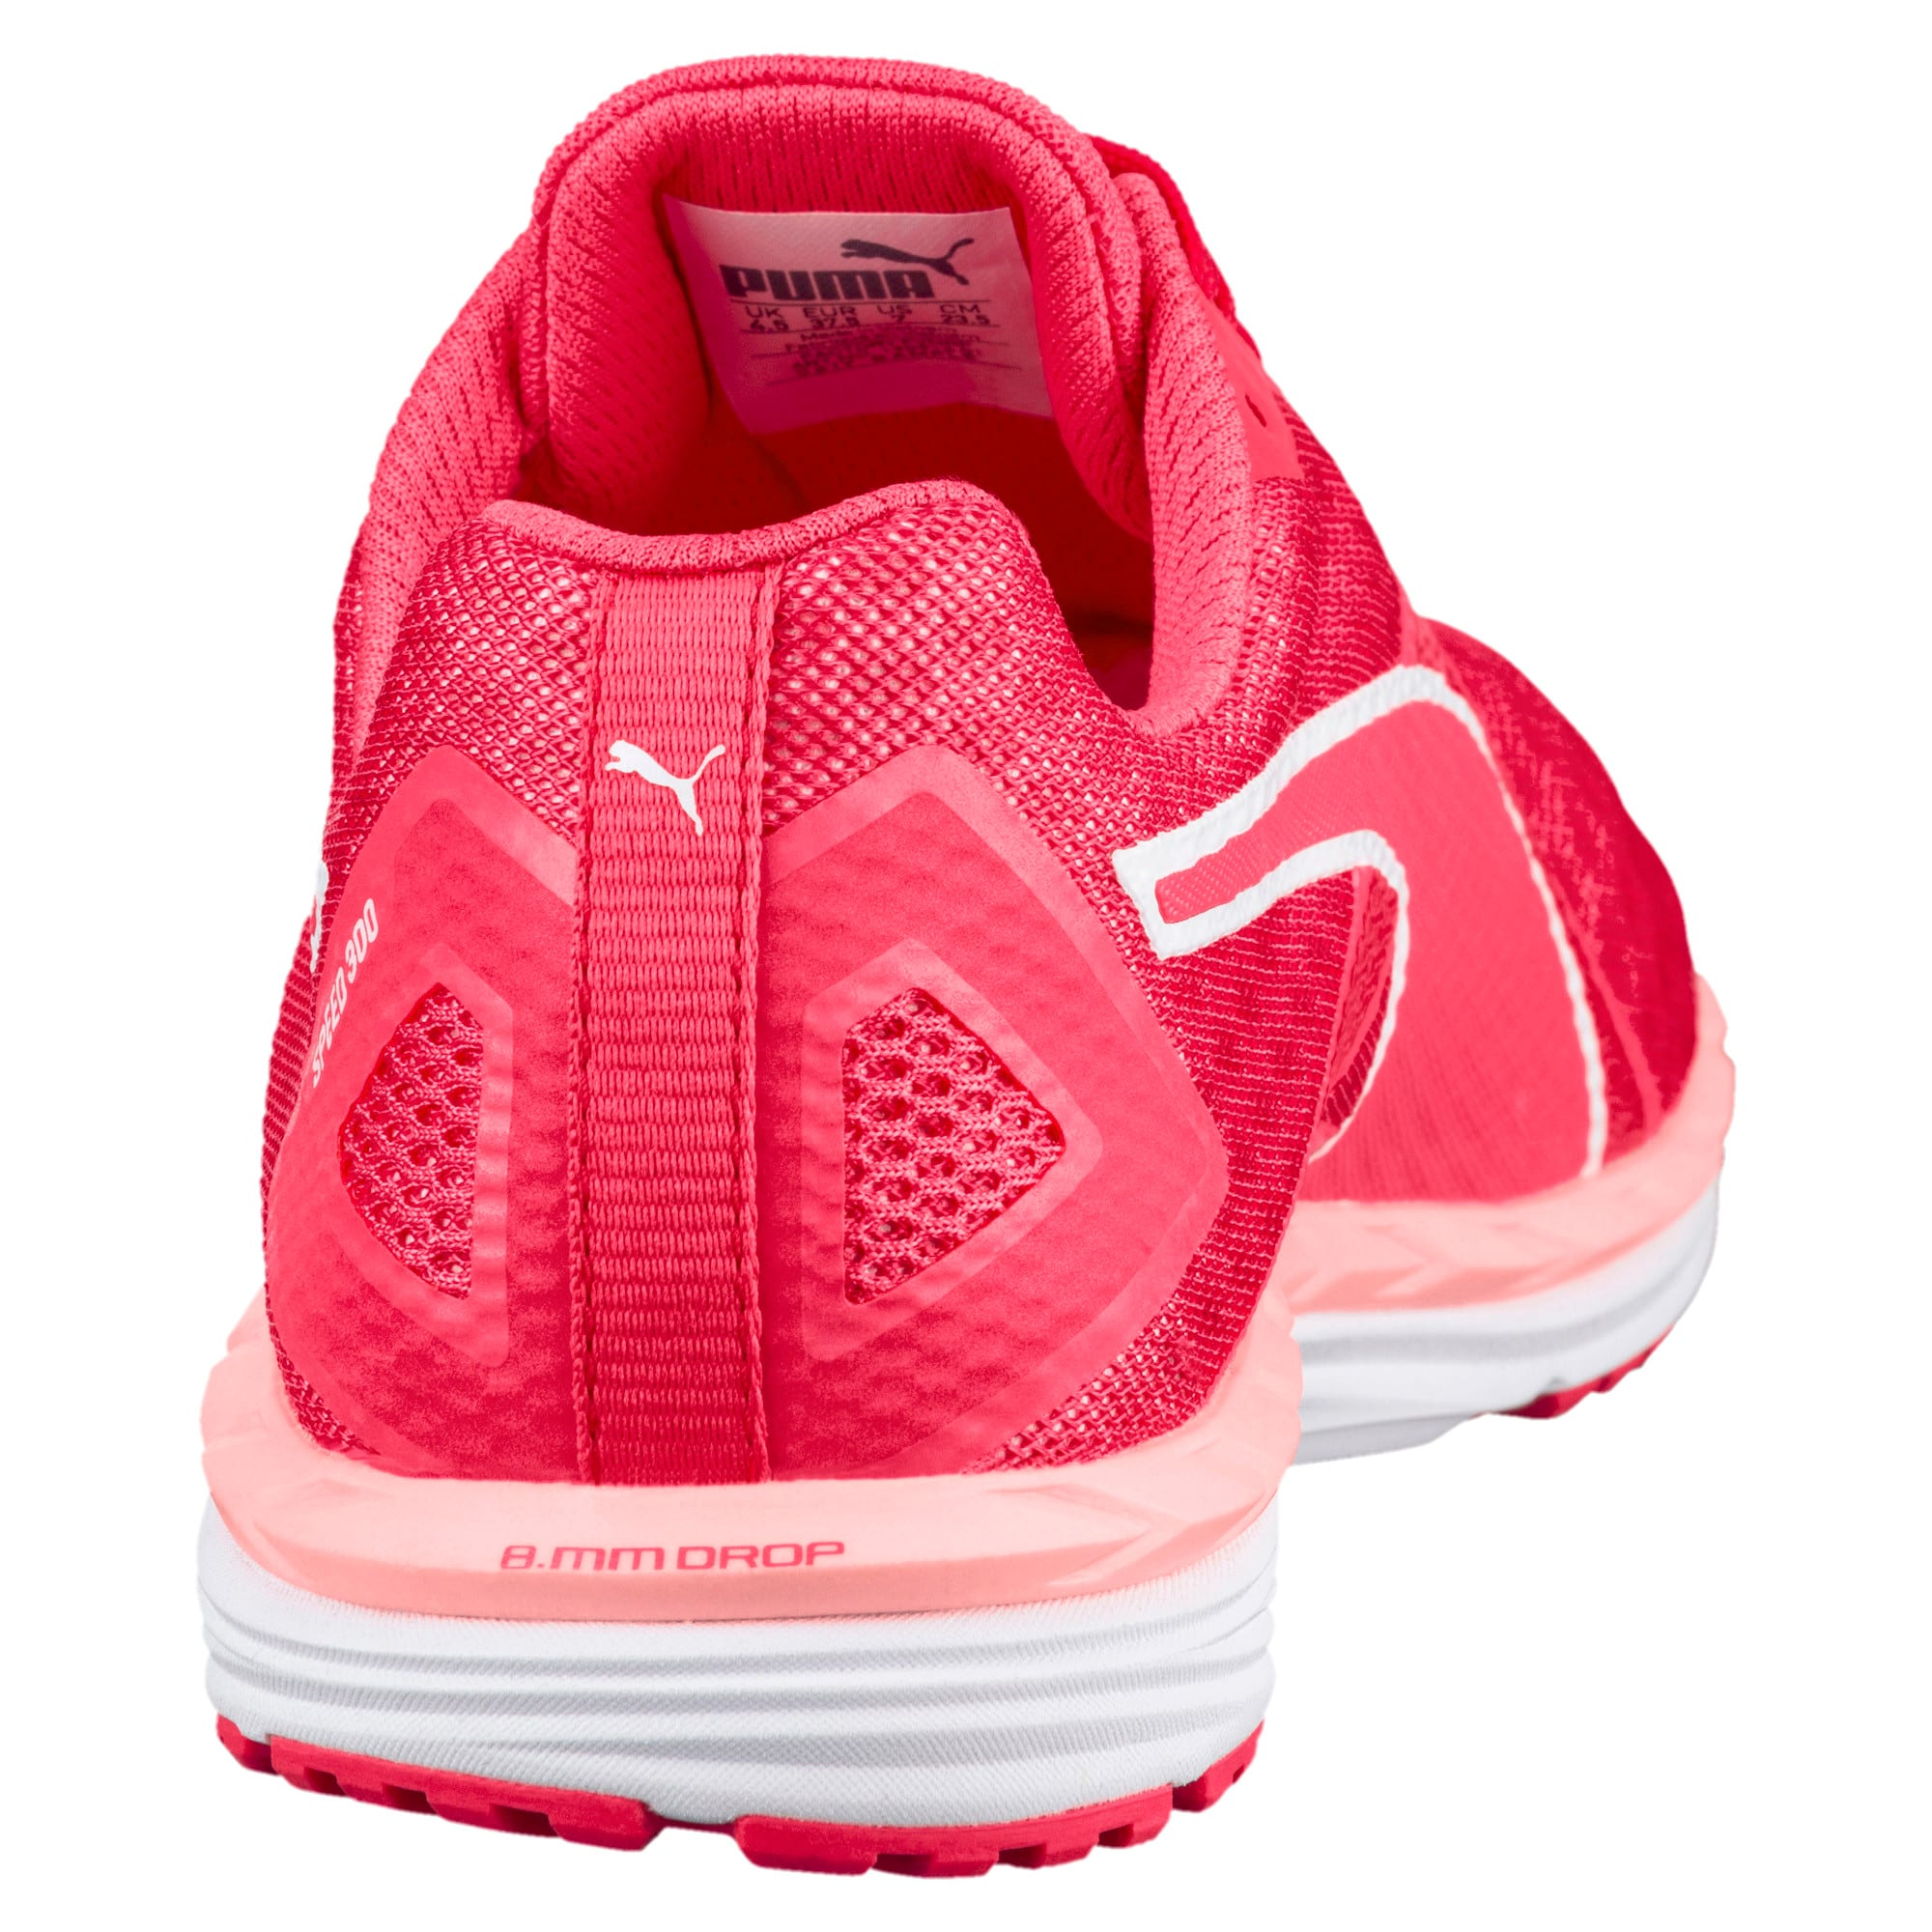 Thumbnail 2 of Speed 300 IGNITE 3 Women's Running Shoes, Pink-Fluo Peach-White, medium-IND